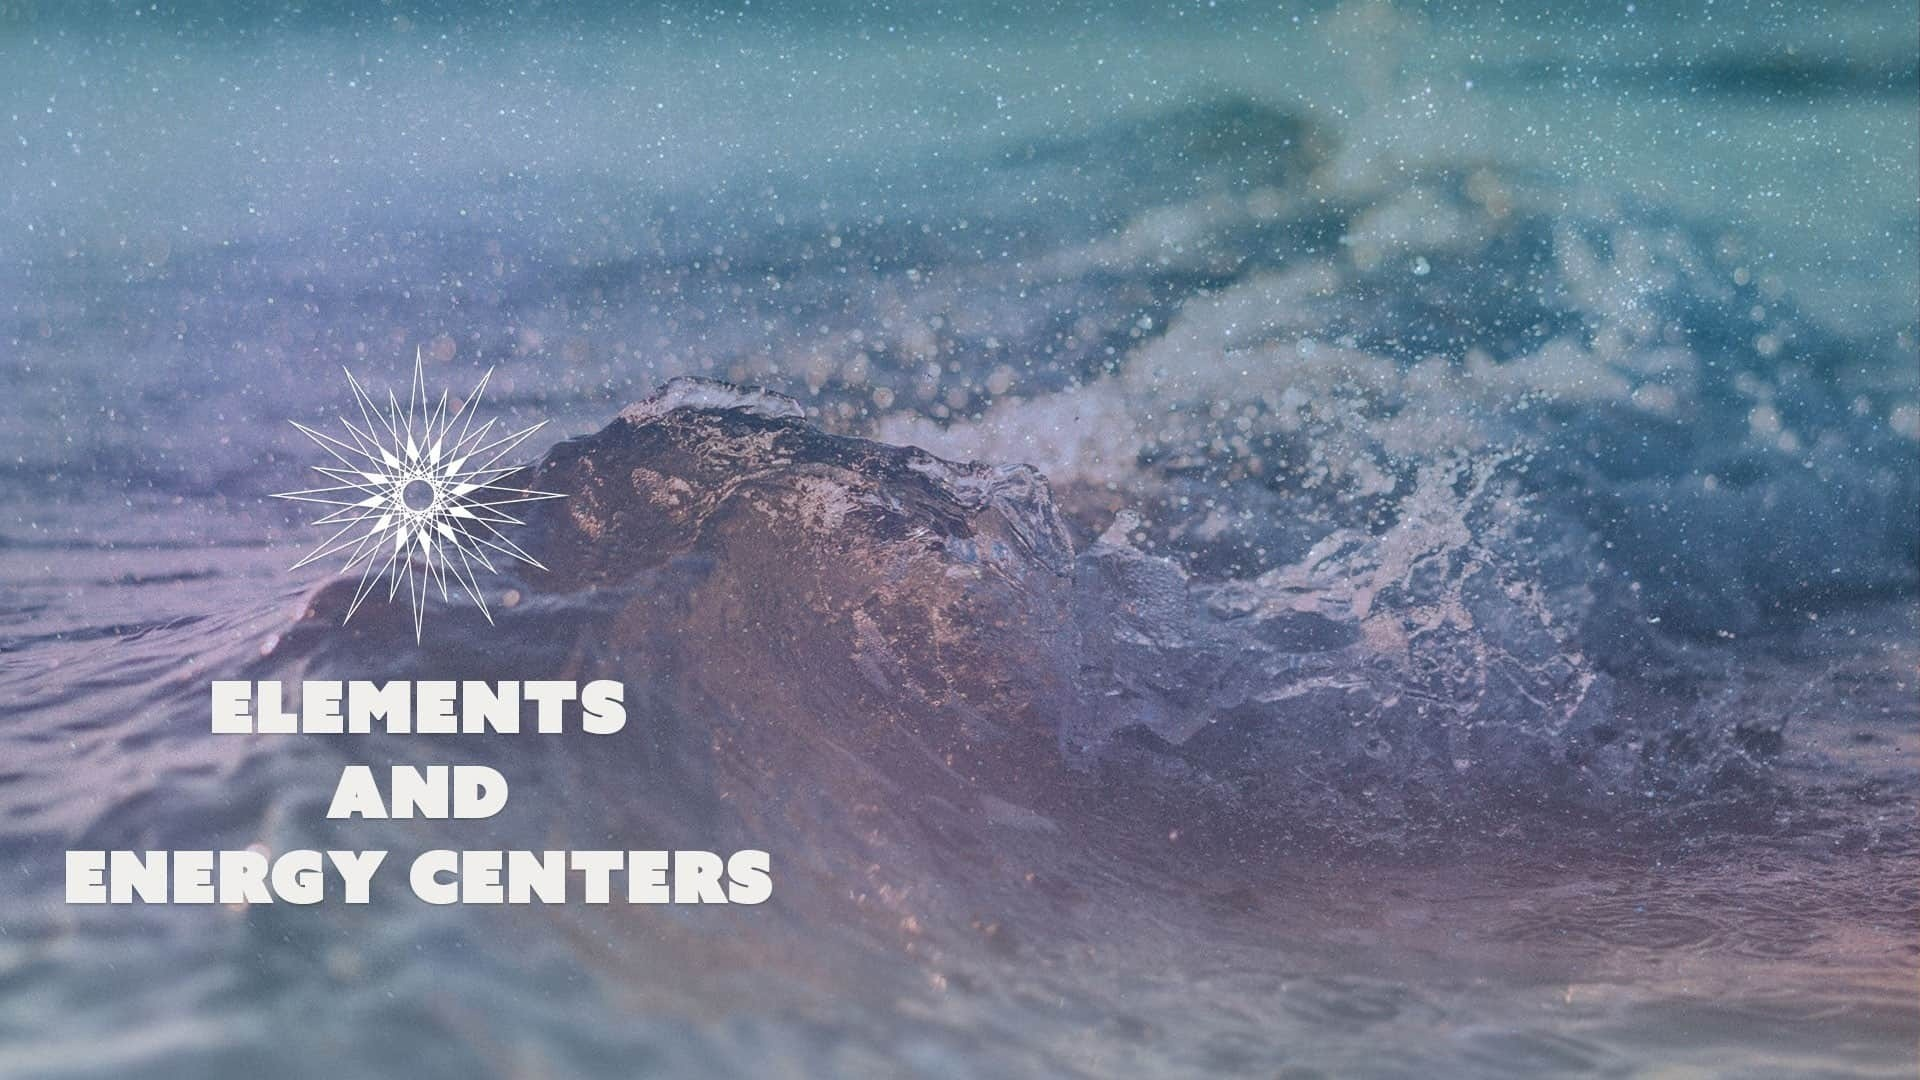 Change Your Stars - Elements and Energy Centers